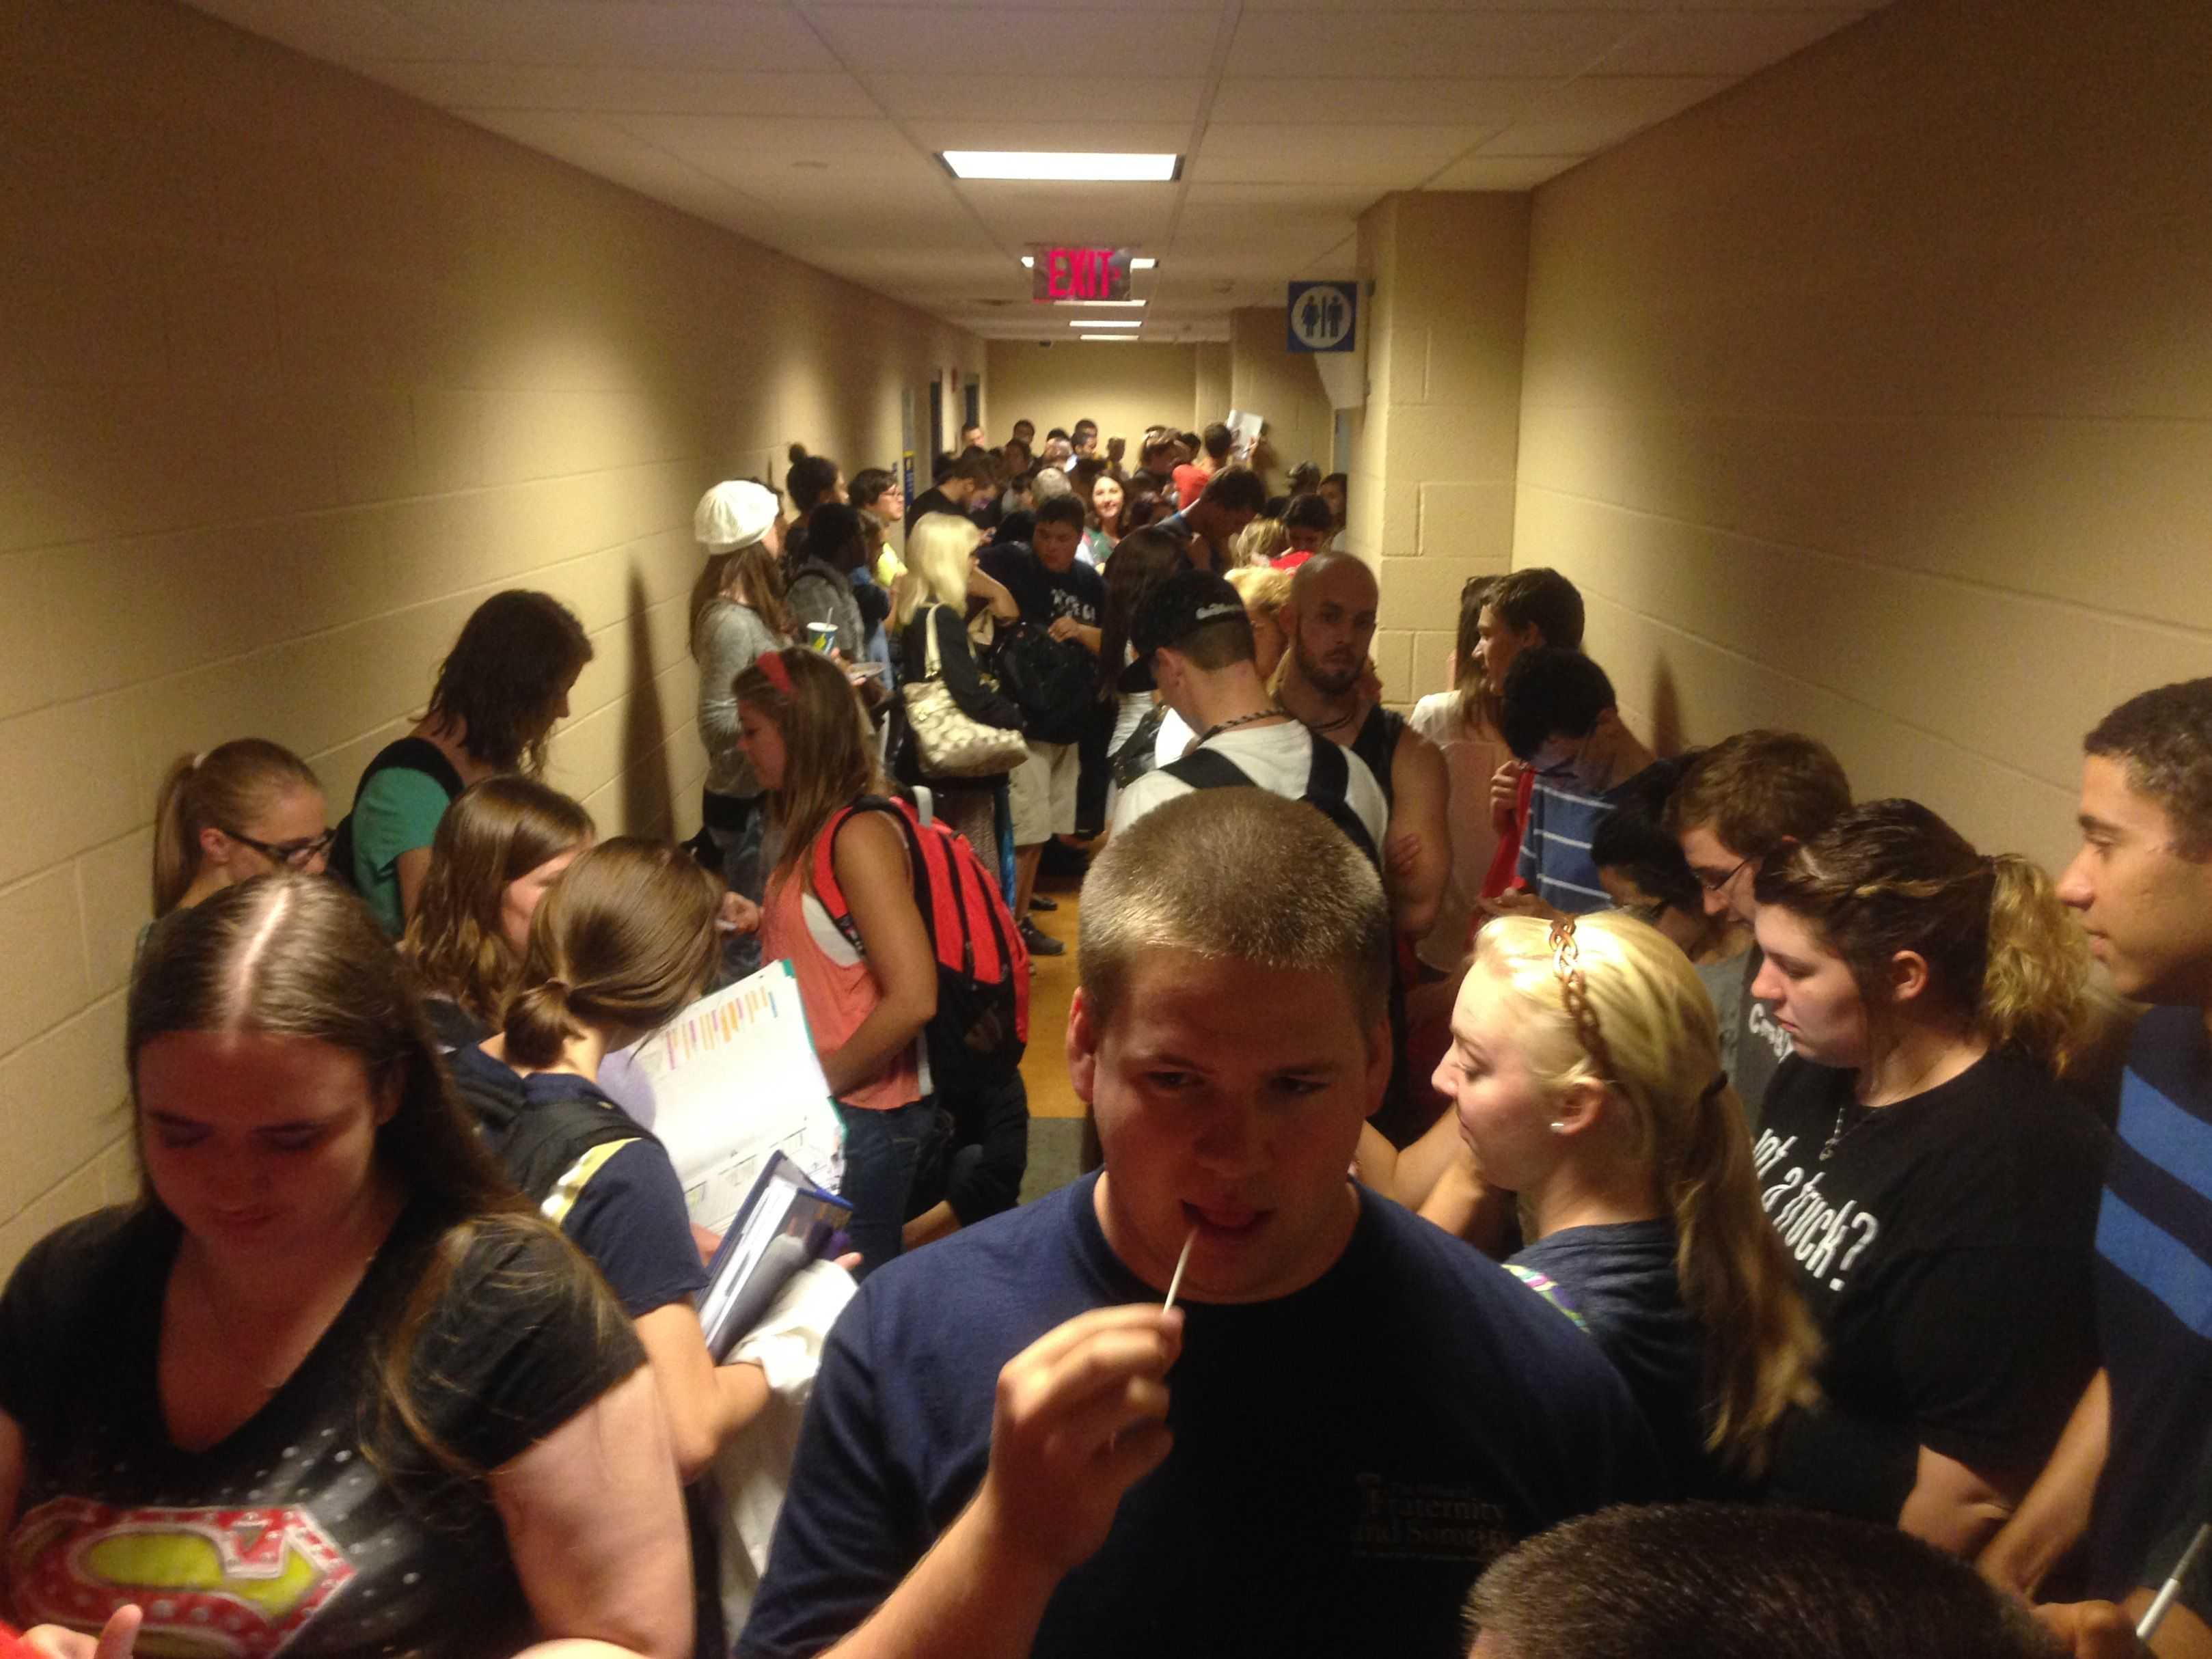 Students take shelter in the basement of the Student Union during a tornado warning.